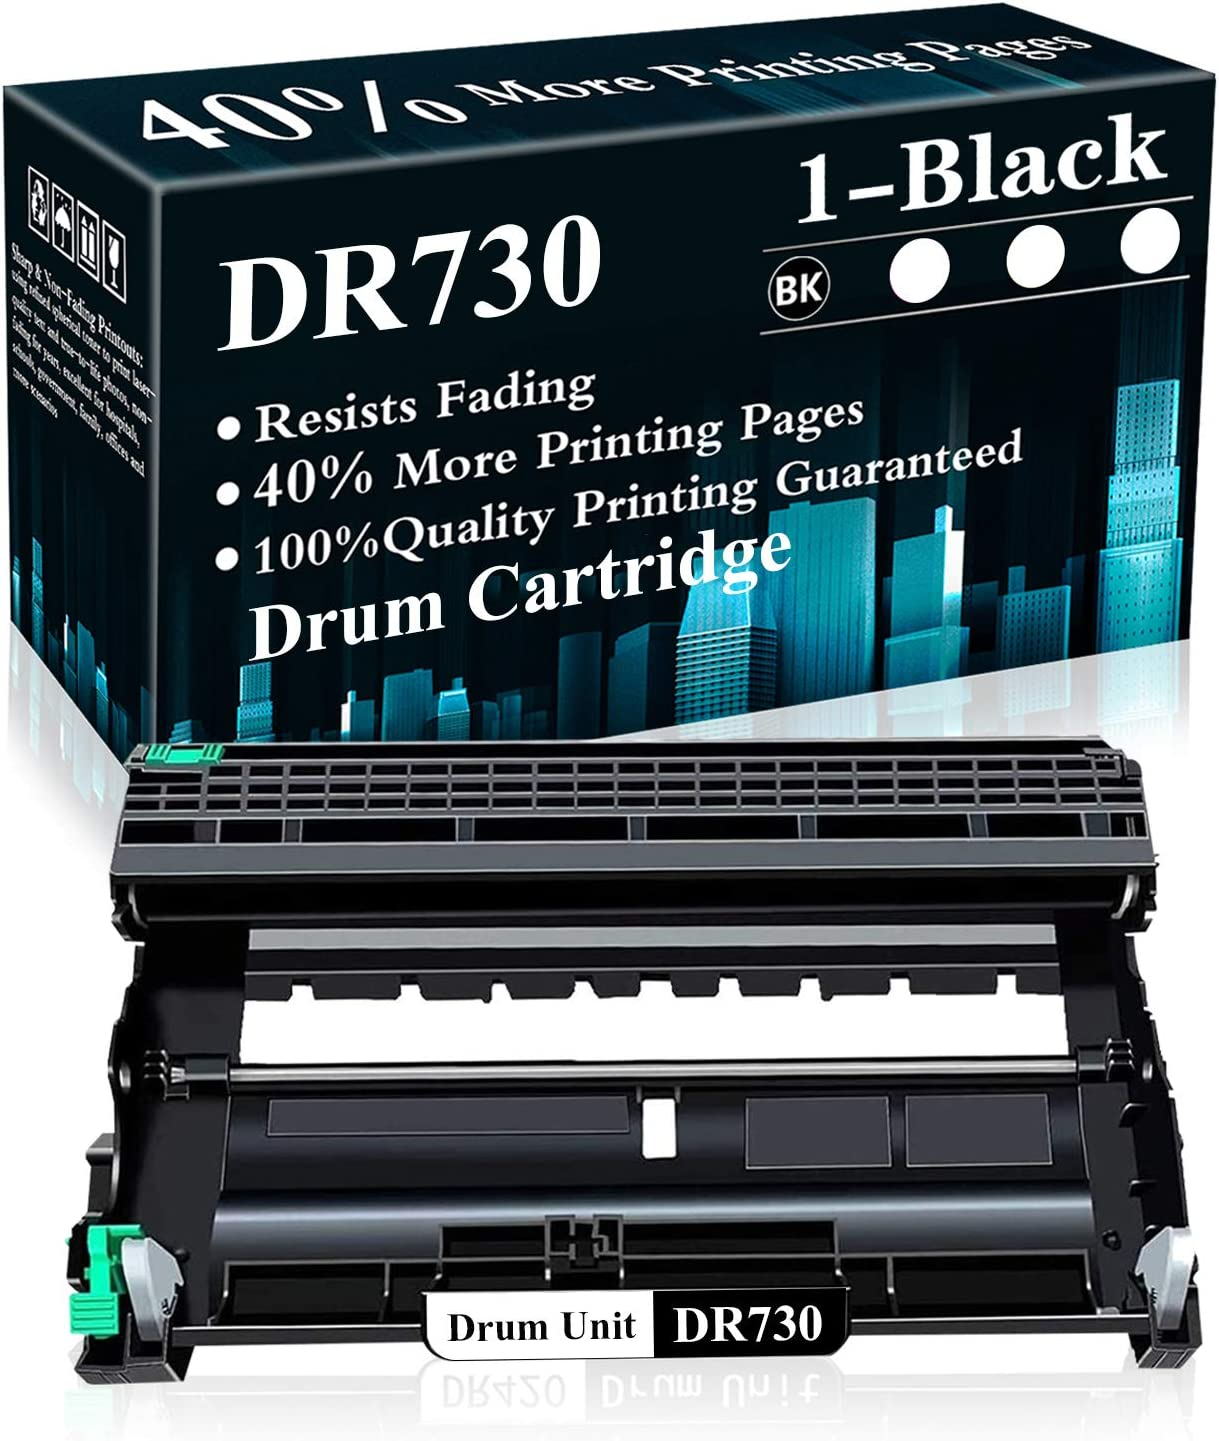 1 Pack DR730 Black Drum Unit Replacement for Brother DCP-L2550DW MFC-L2710DW L2750DW L2750DWXL HL-L2350DW HL-L2370DW L2390DW L2395DW Printer,Sold by TopInk